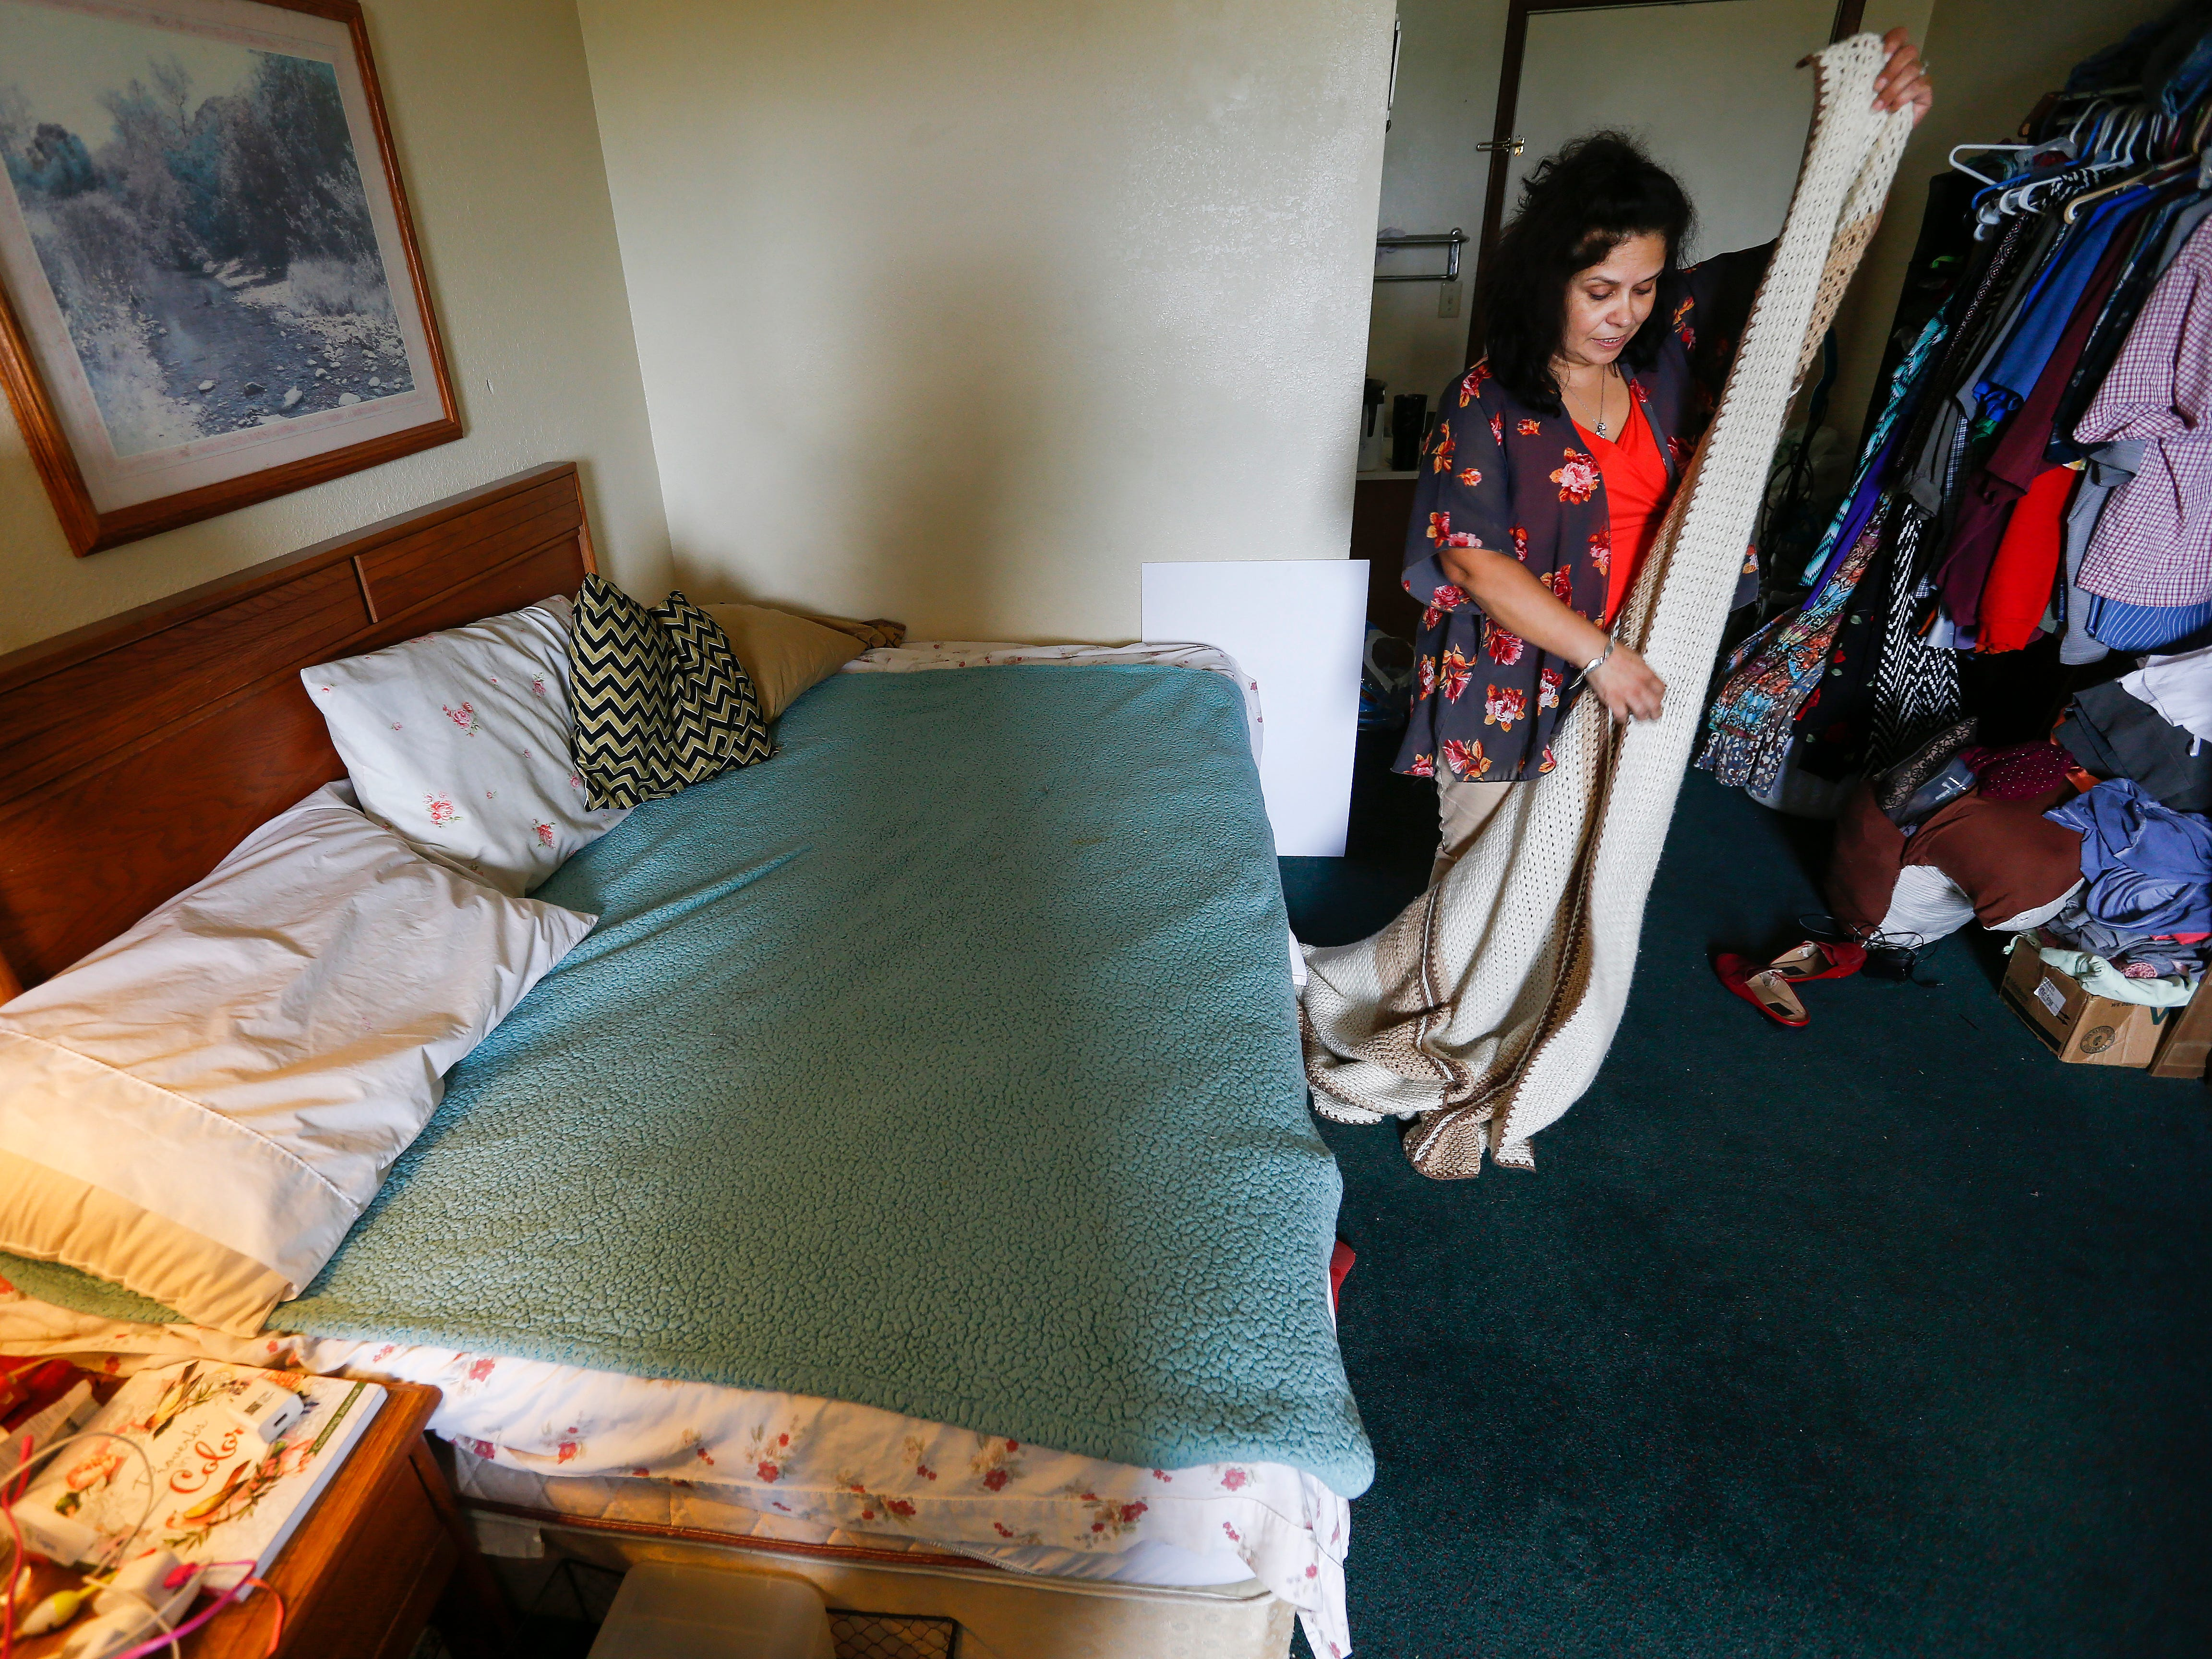 Chrystal Ketterman fixes the bed inside of her room at the extended stay hotel she is living in in Branson on Monday, July 30, 2018.